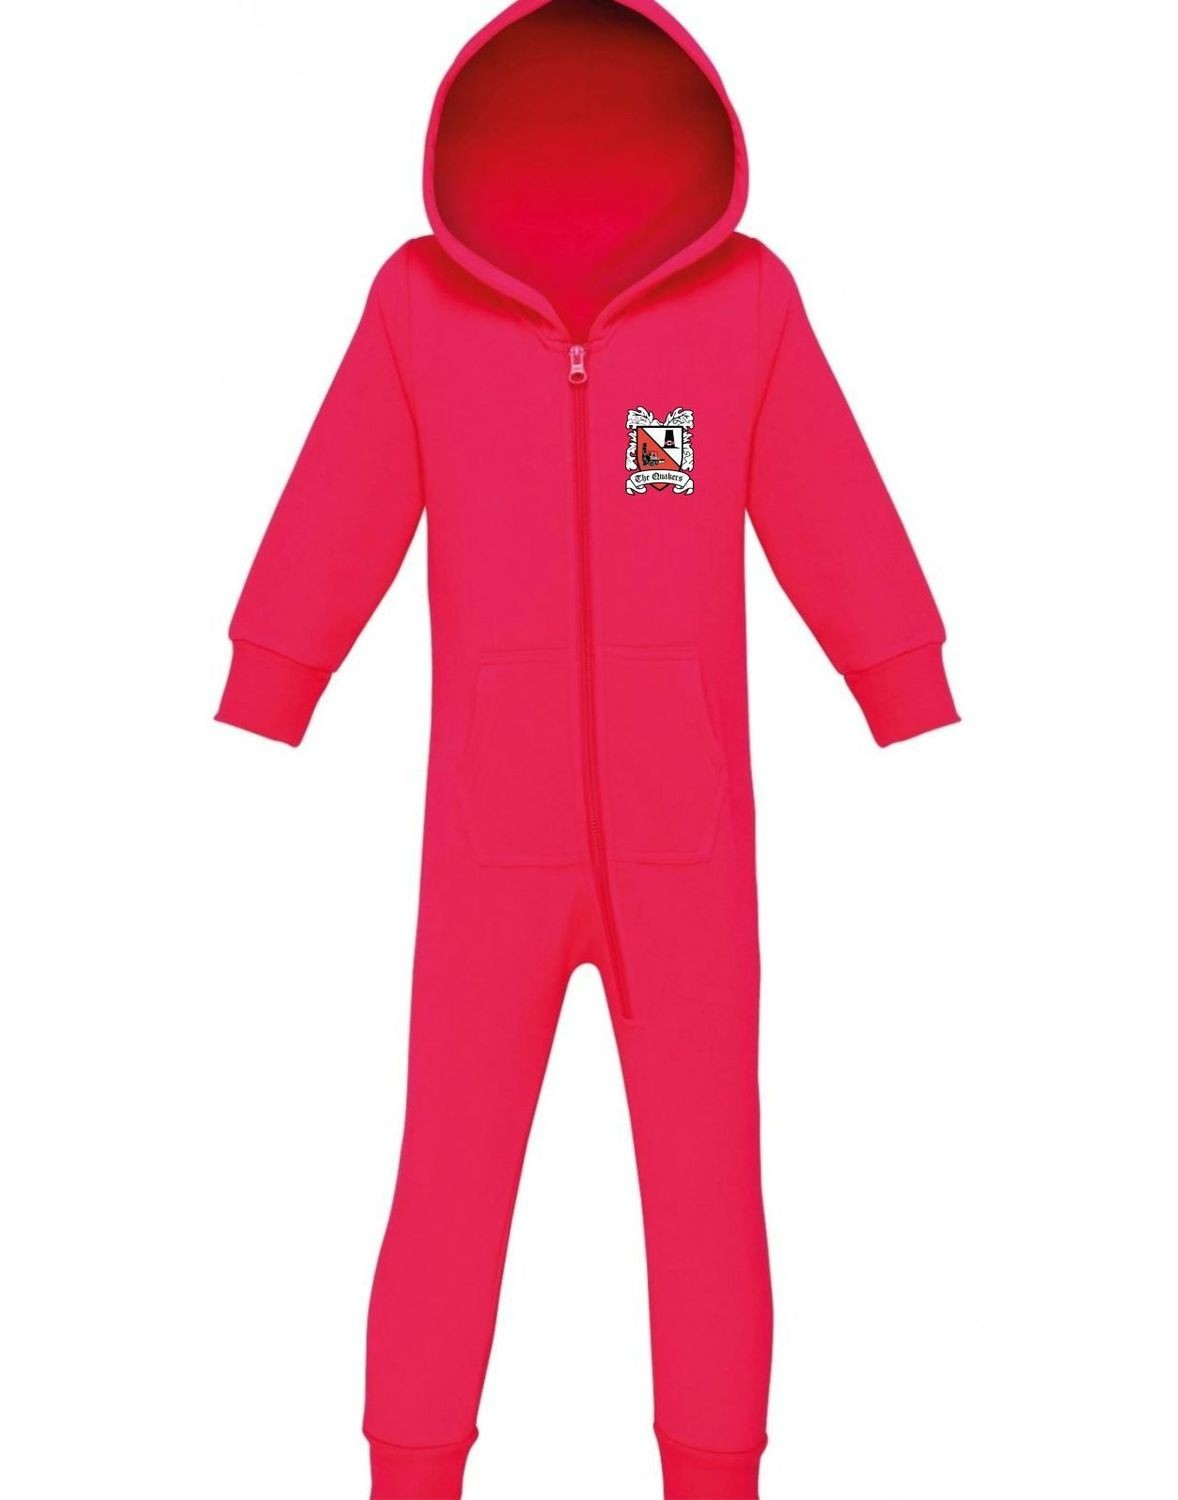 Darlington FC Onesie 'Pink' (Ordered On Request)